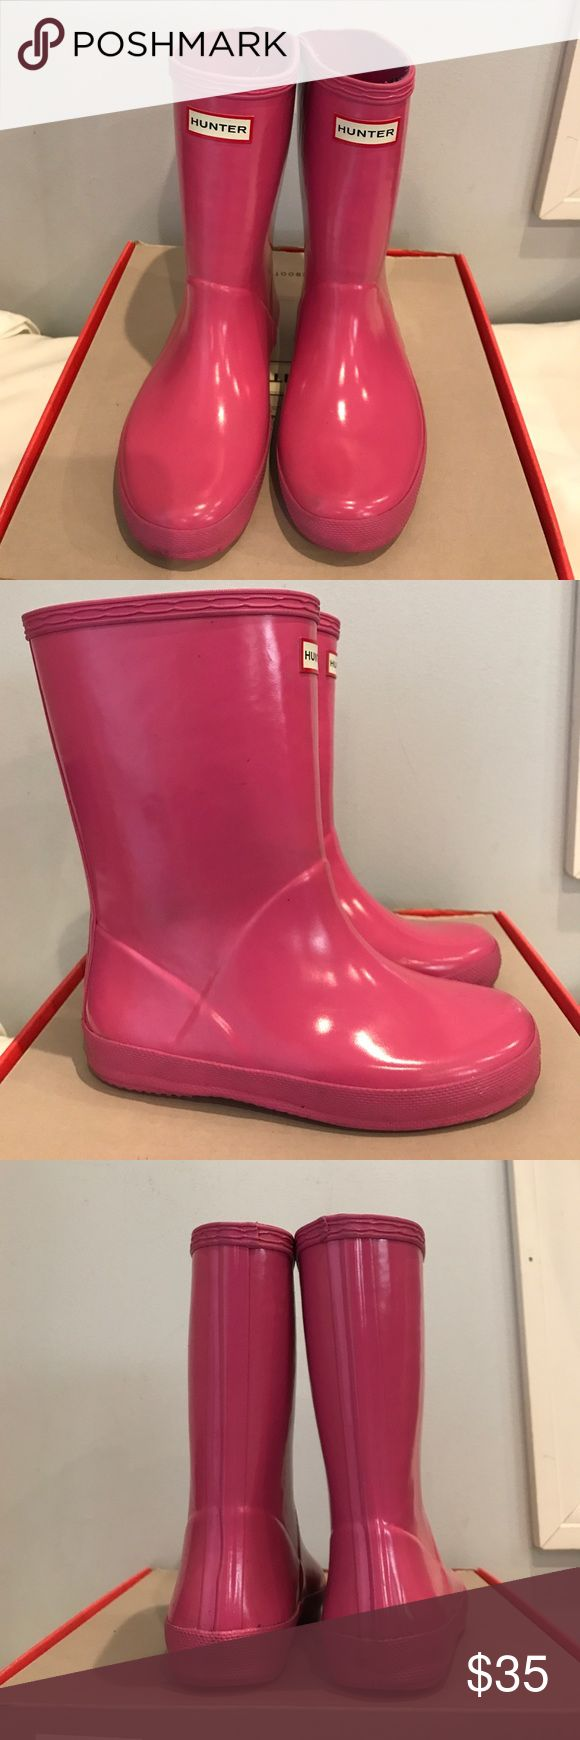 Girls Hunter Boots - Pink Used but in great condition pink hunter rainboots for girls. No trades Hunter Shoes Rain & Snow Boots